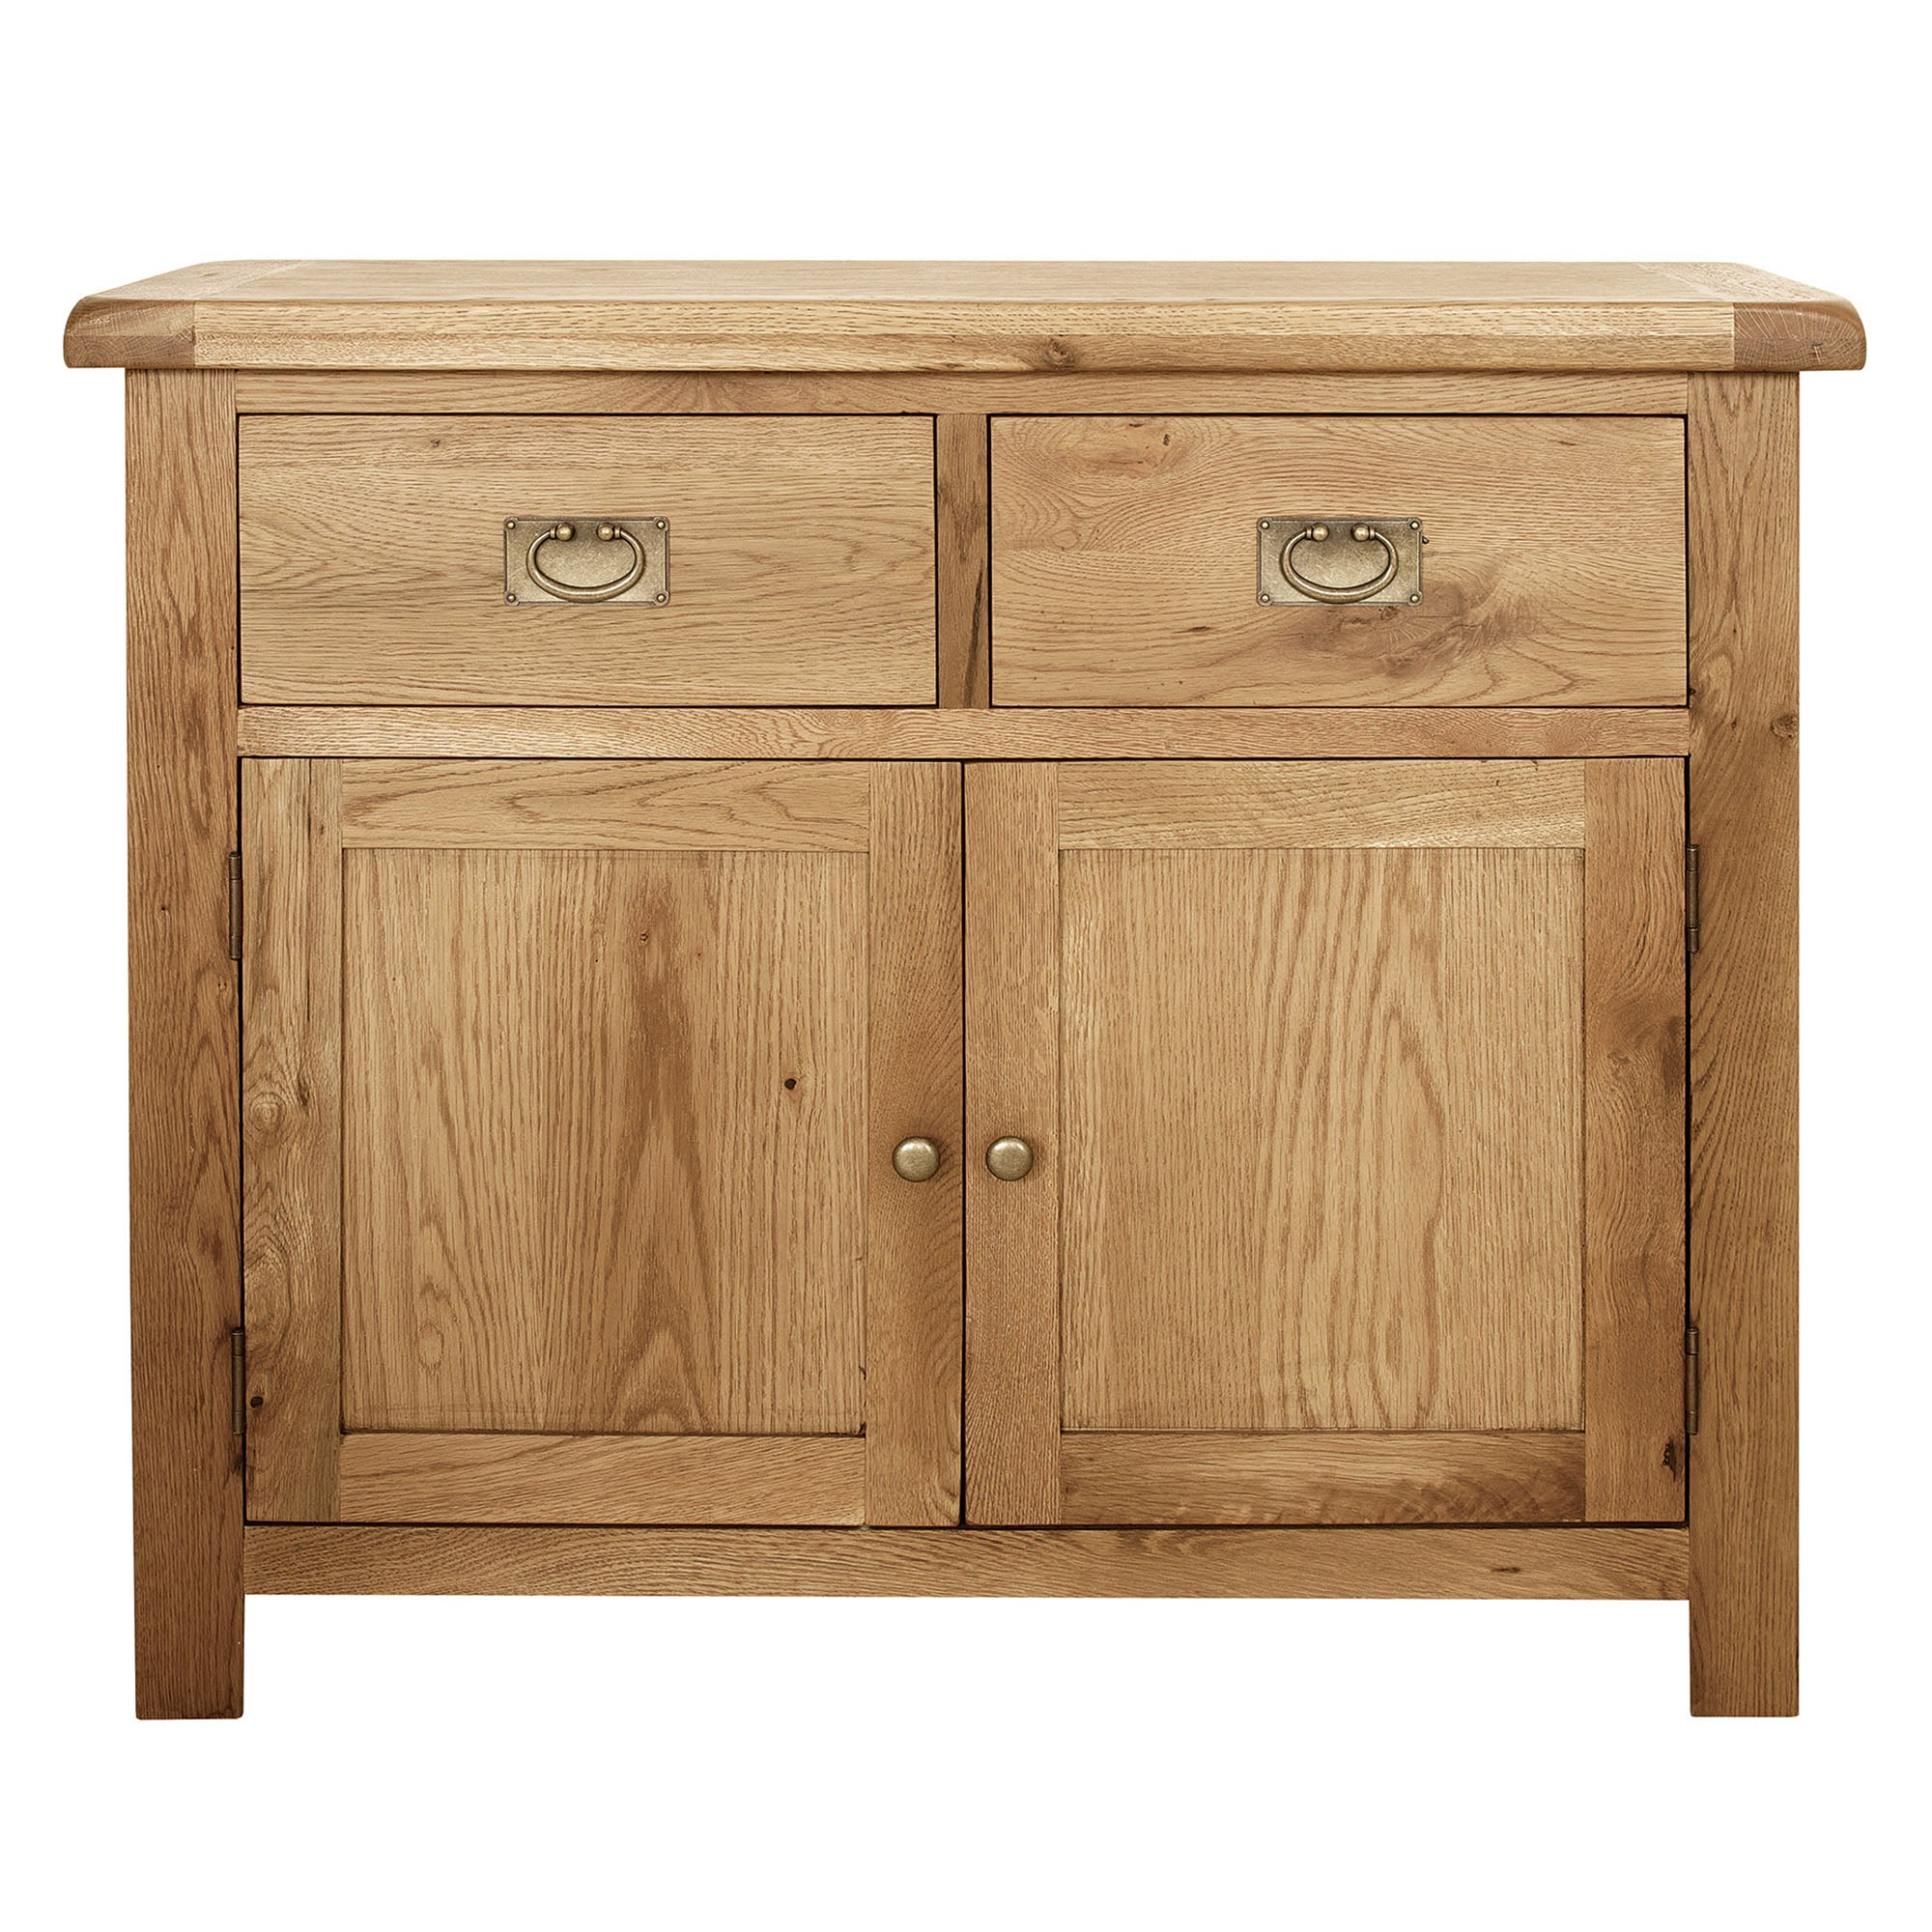 Aylesbury Oak Small Sideboard